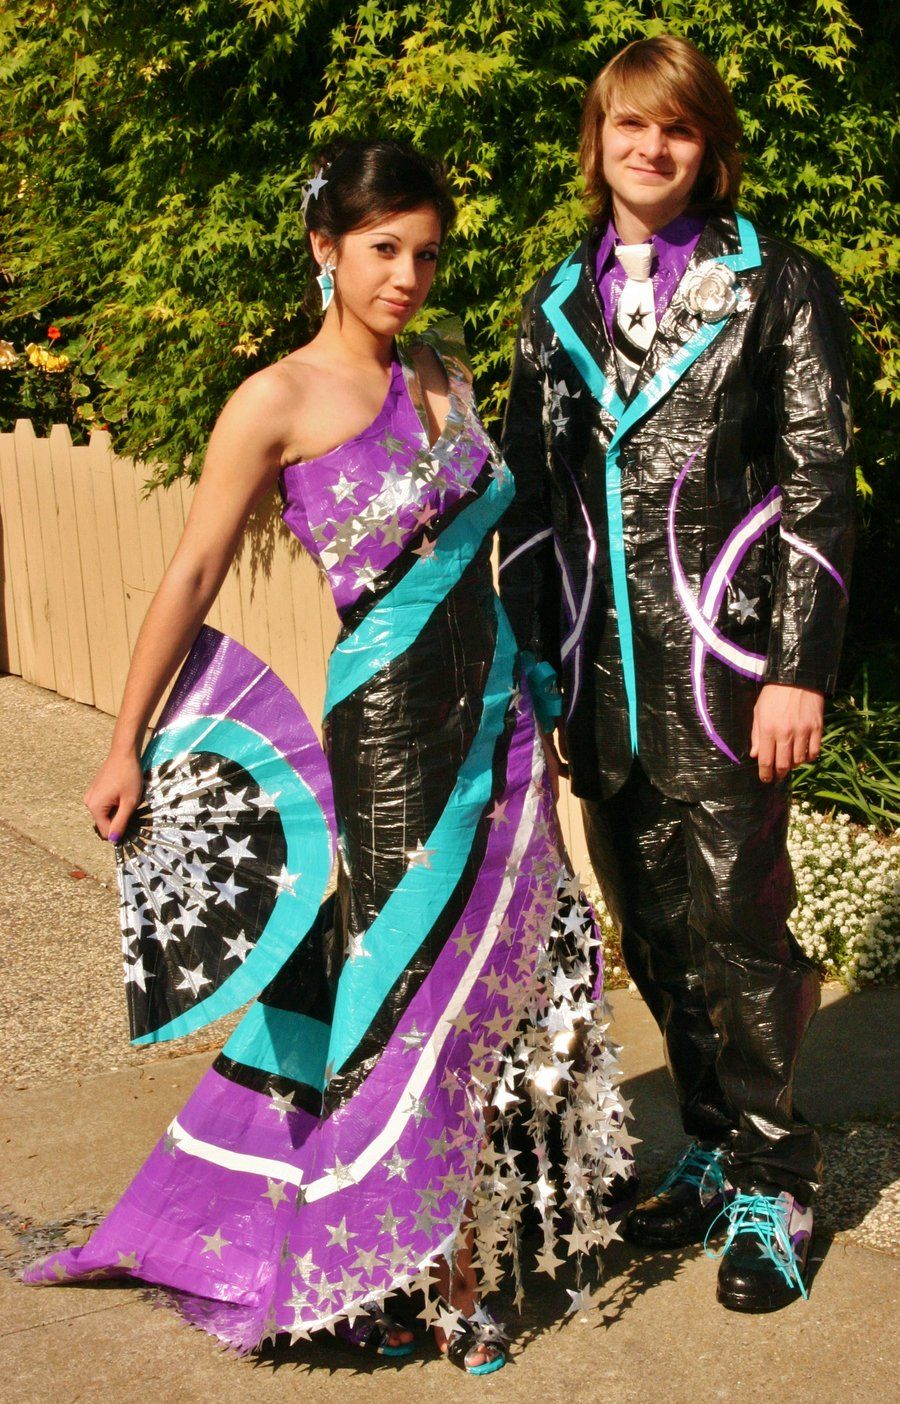 duct tape prom dresses | ... !: Duct Tape Prom Attire (25 pics ...